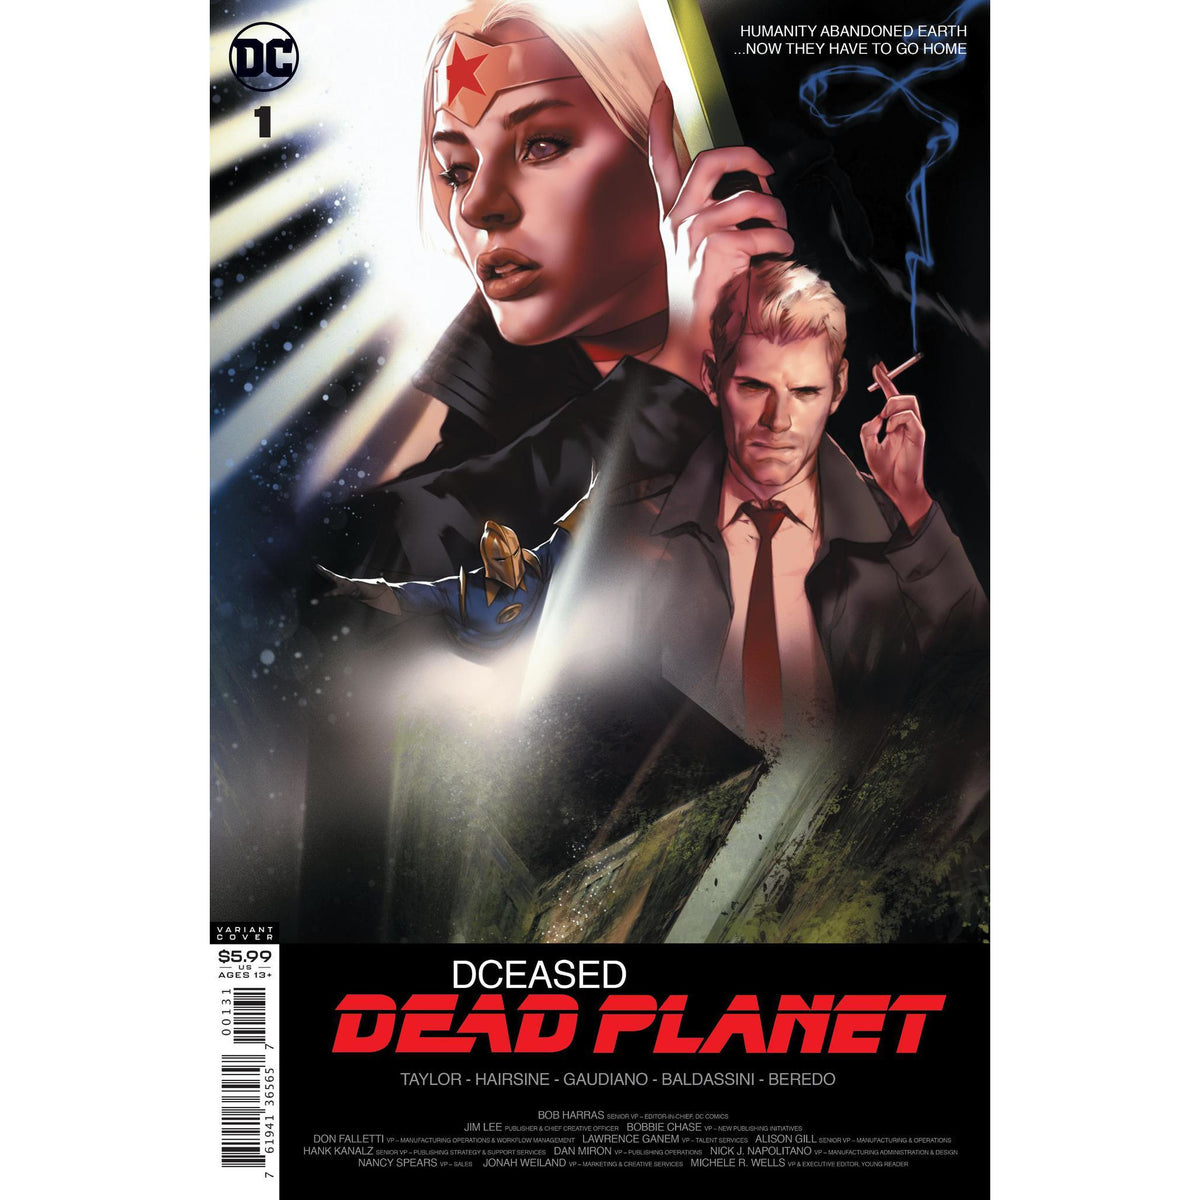 DCEASED DEAD PLANET #1 (OF 6) - CARD STOCK BEN OLIVER MOVIE VARIANT COVER C